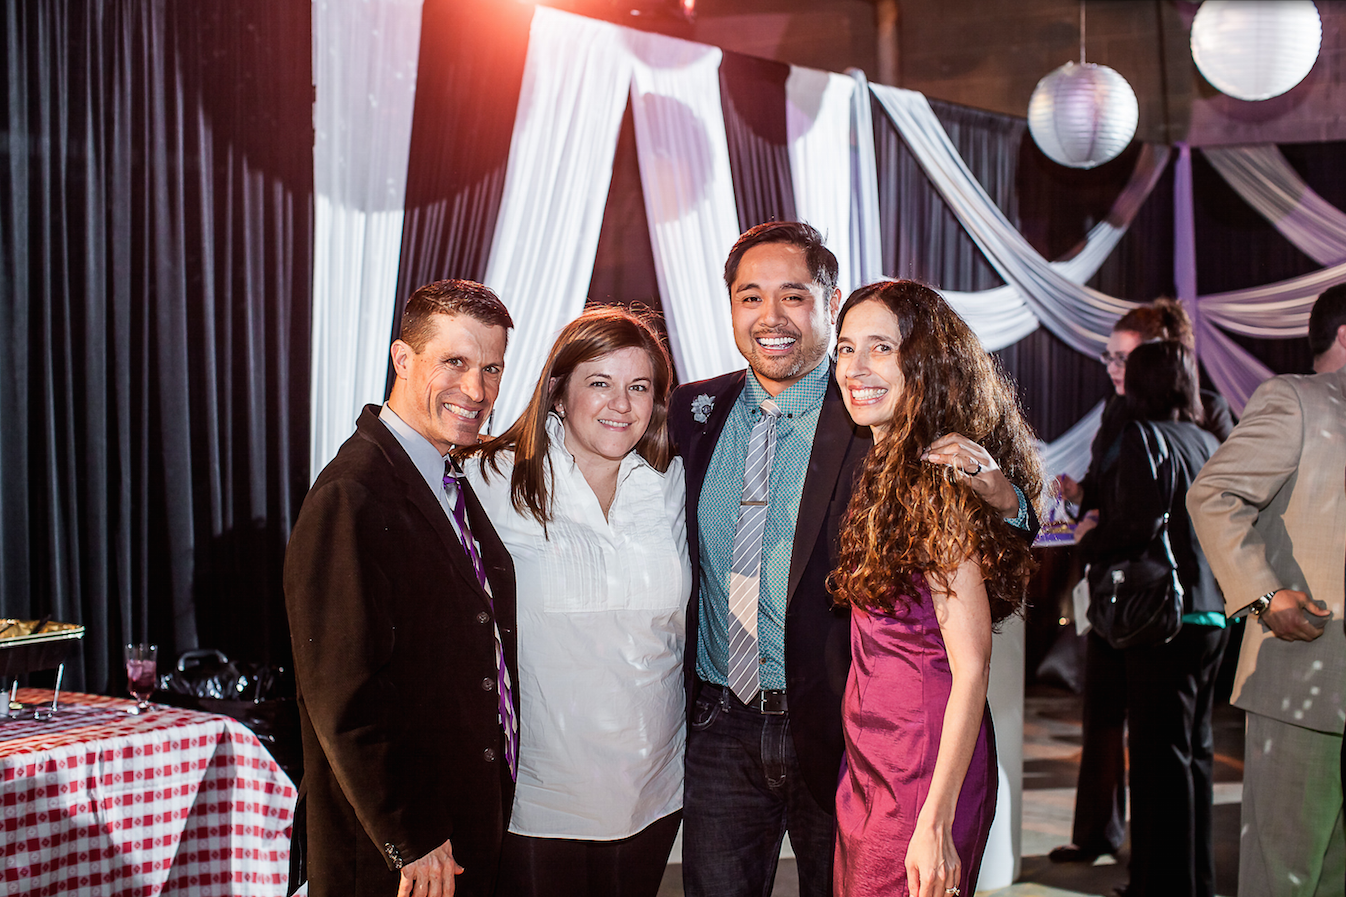 Jay & Tamara with Erin & Randy from Revel Decor | Photo Courtesy Just Love Me Photography